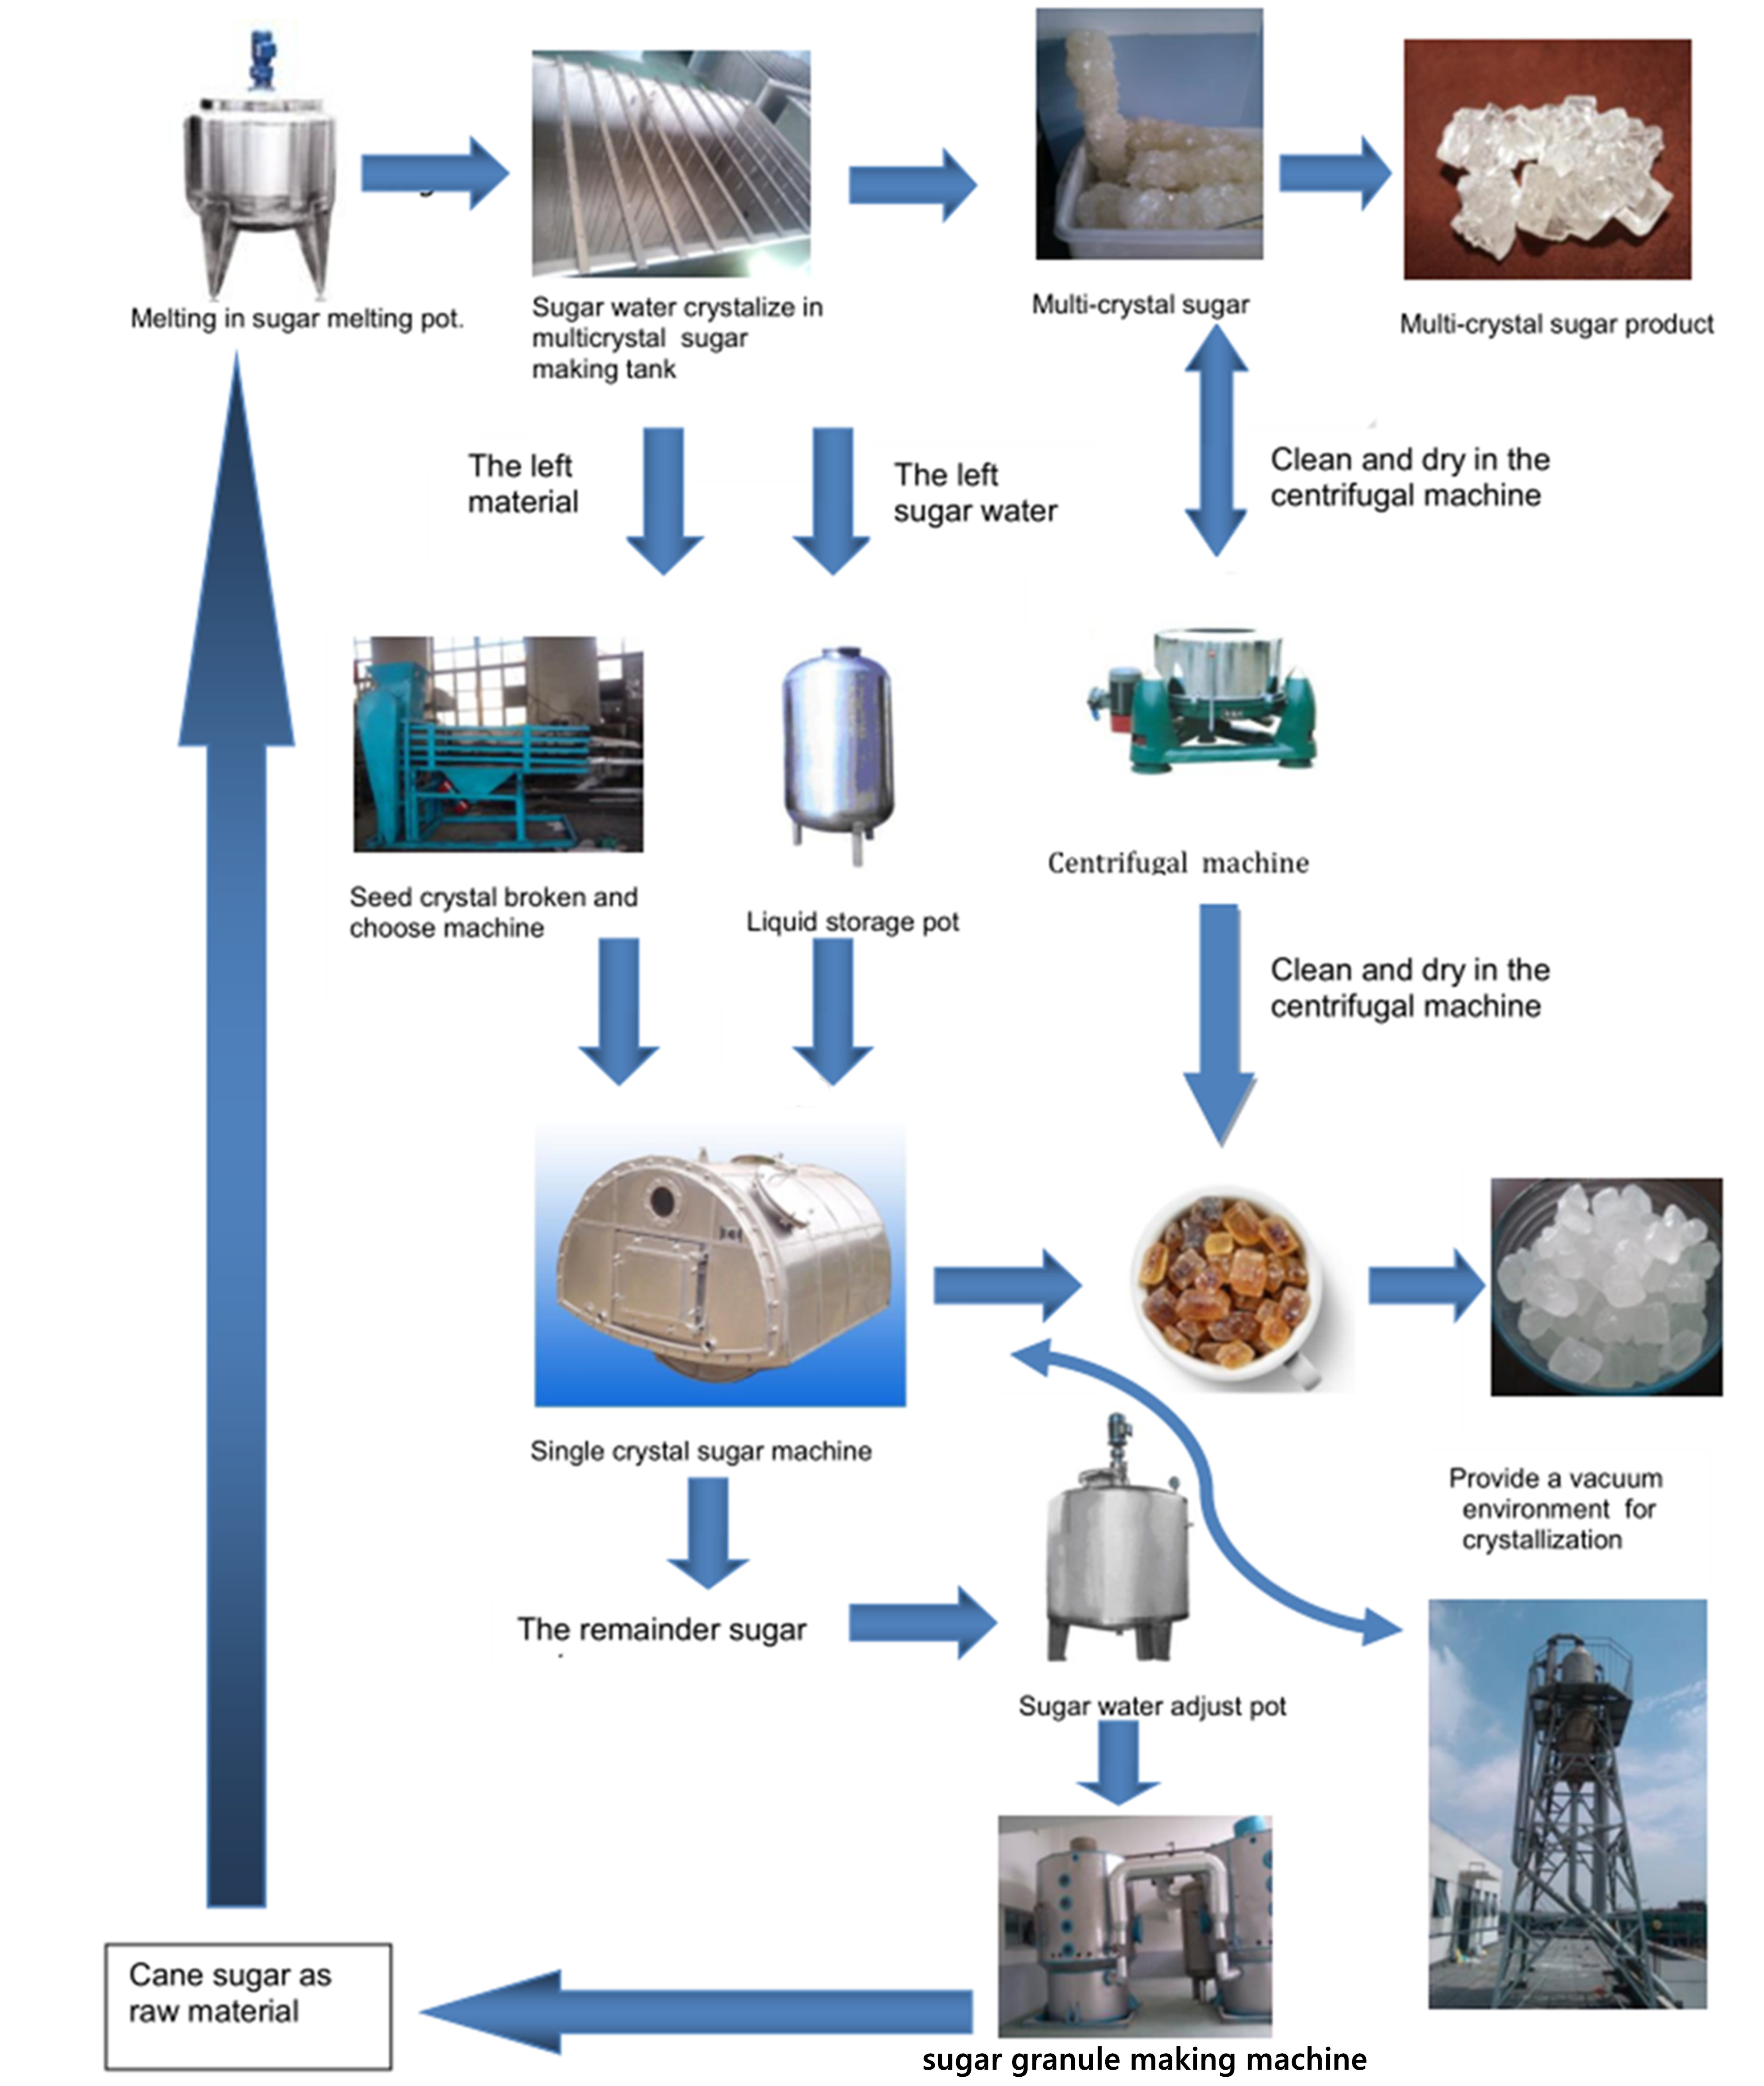 crystal candy processing flow chart B.jpg